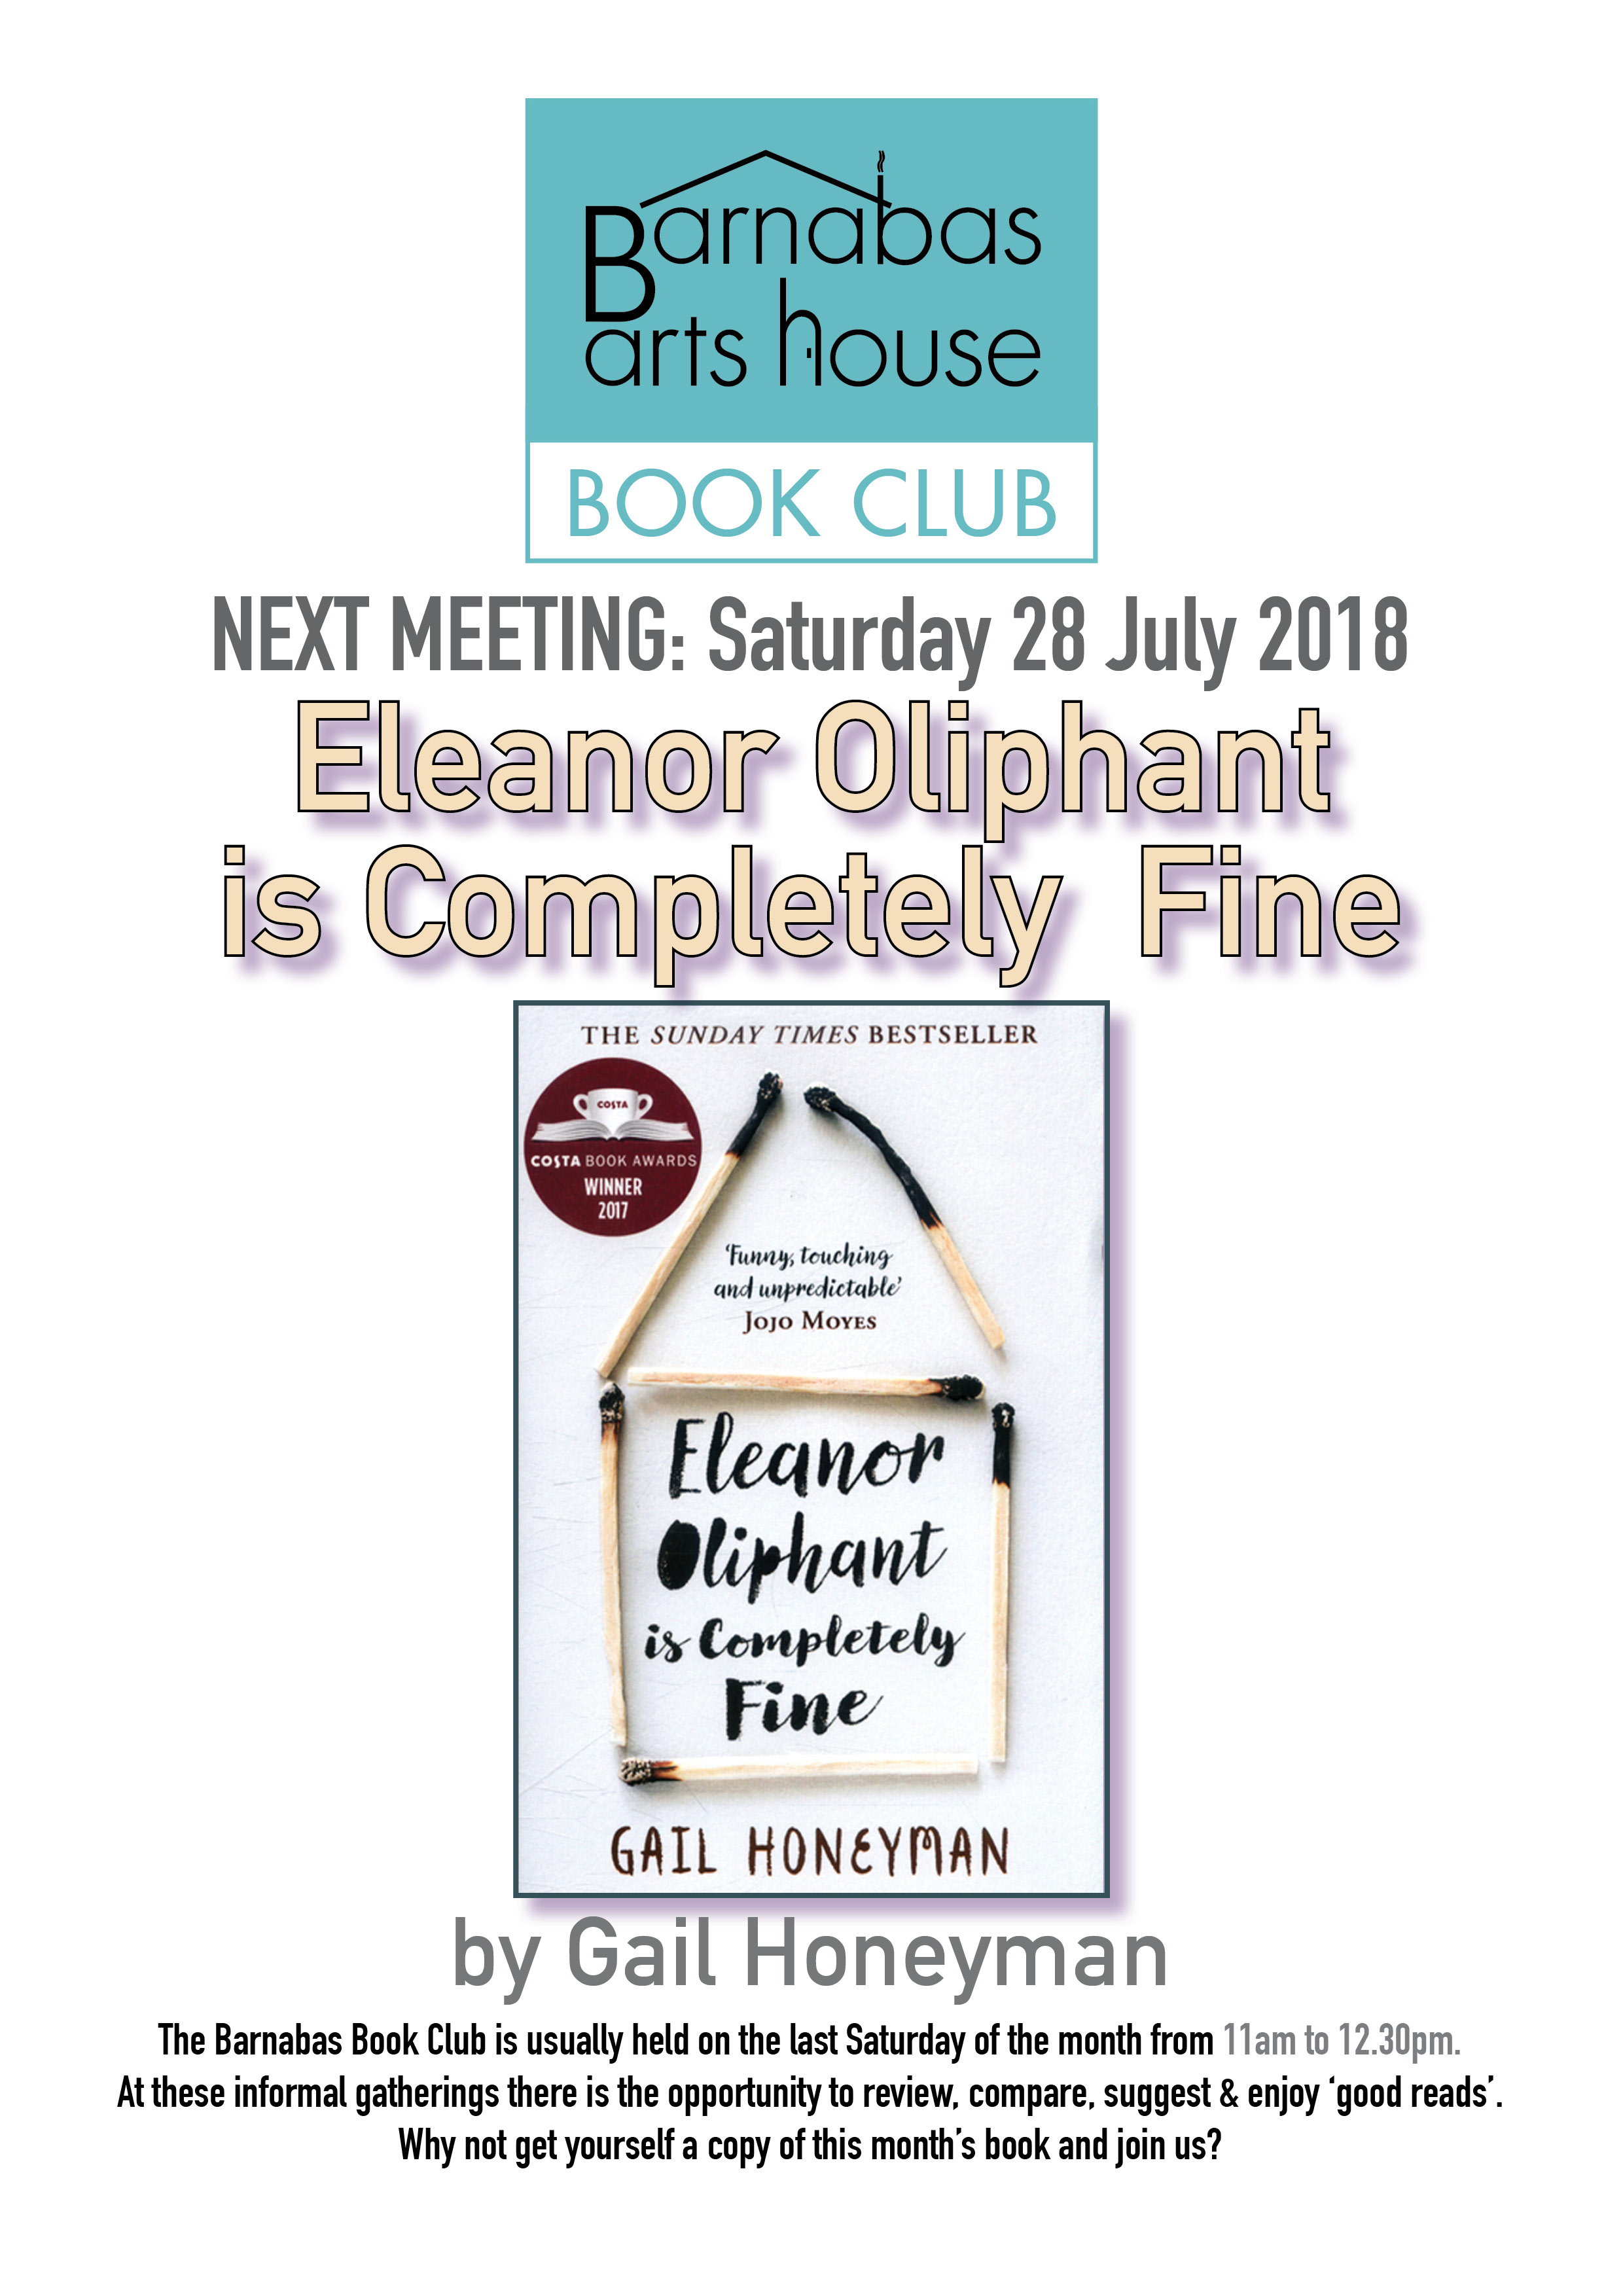 Barnabas Book Club-Eleanor Oliphant is Completely Fine @ Barnabas Arts House | Wales | United Kingdom